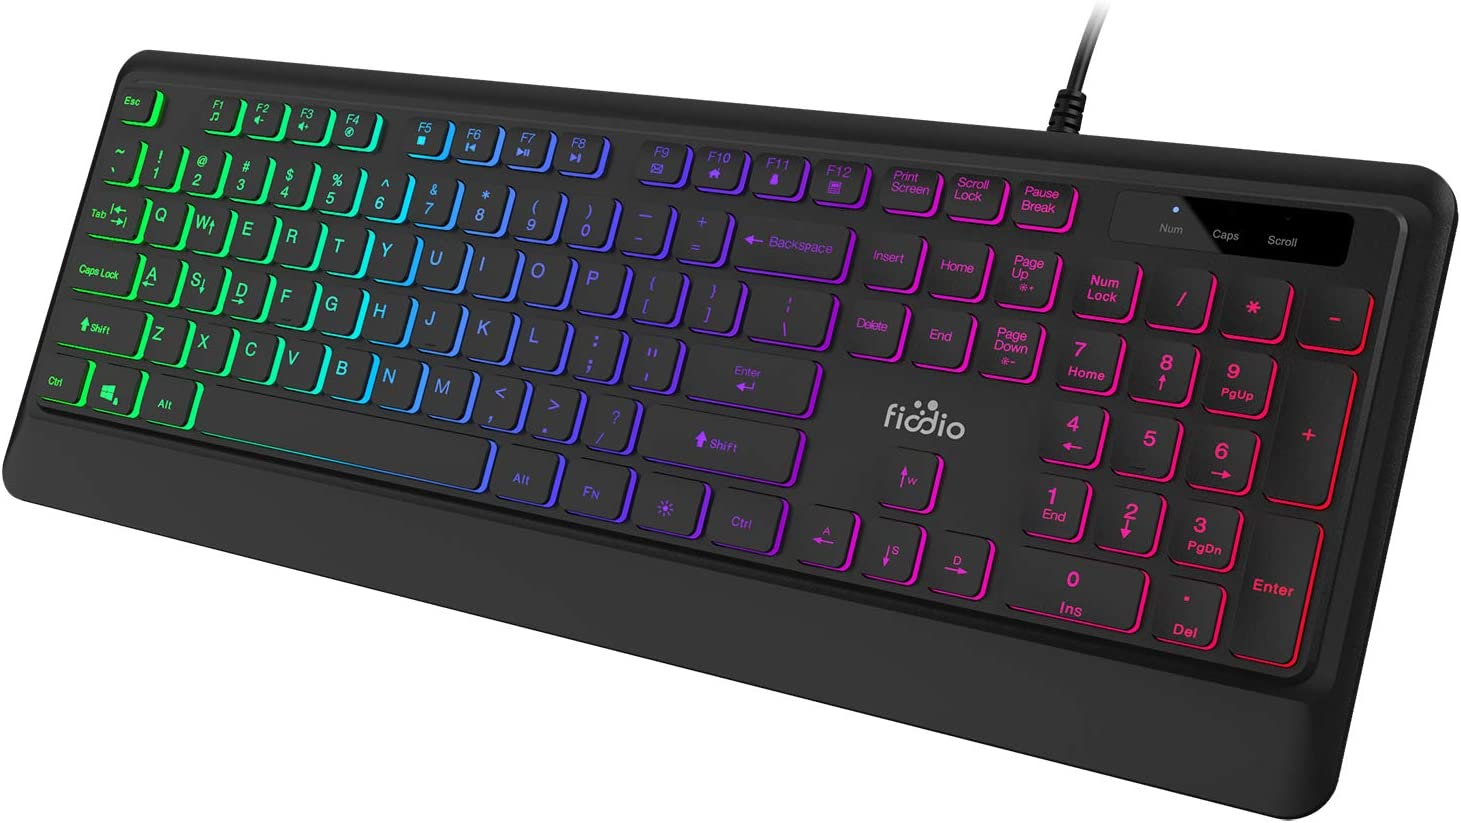 FIODIO Membrane Gaming Keyboard, USB Wired Keyboard with Rainbow Backlit, 104 Comfortable Quiet Silent Keys, 26 Anti-Ghosting Keys, Spill Resistant, Multimedia Control for PC and Desktop Computer